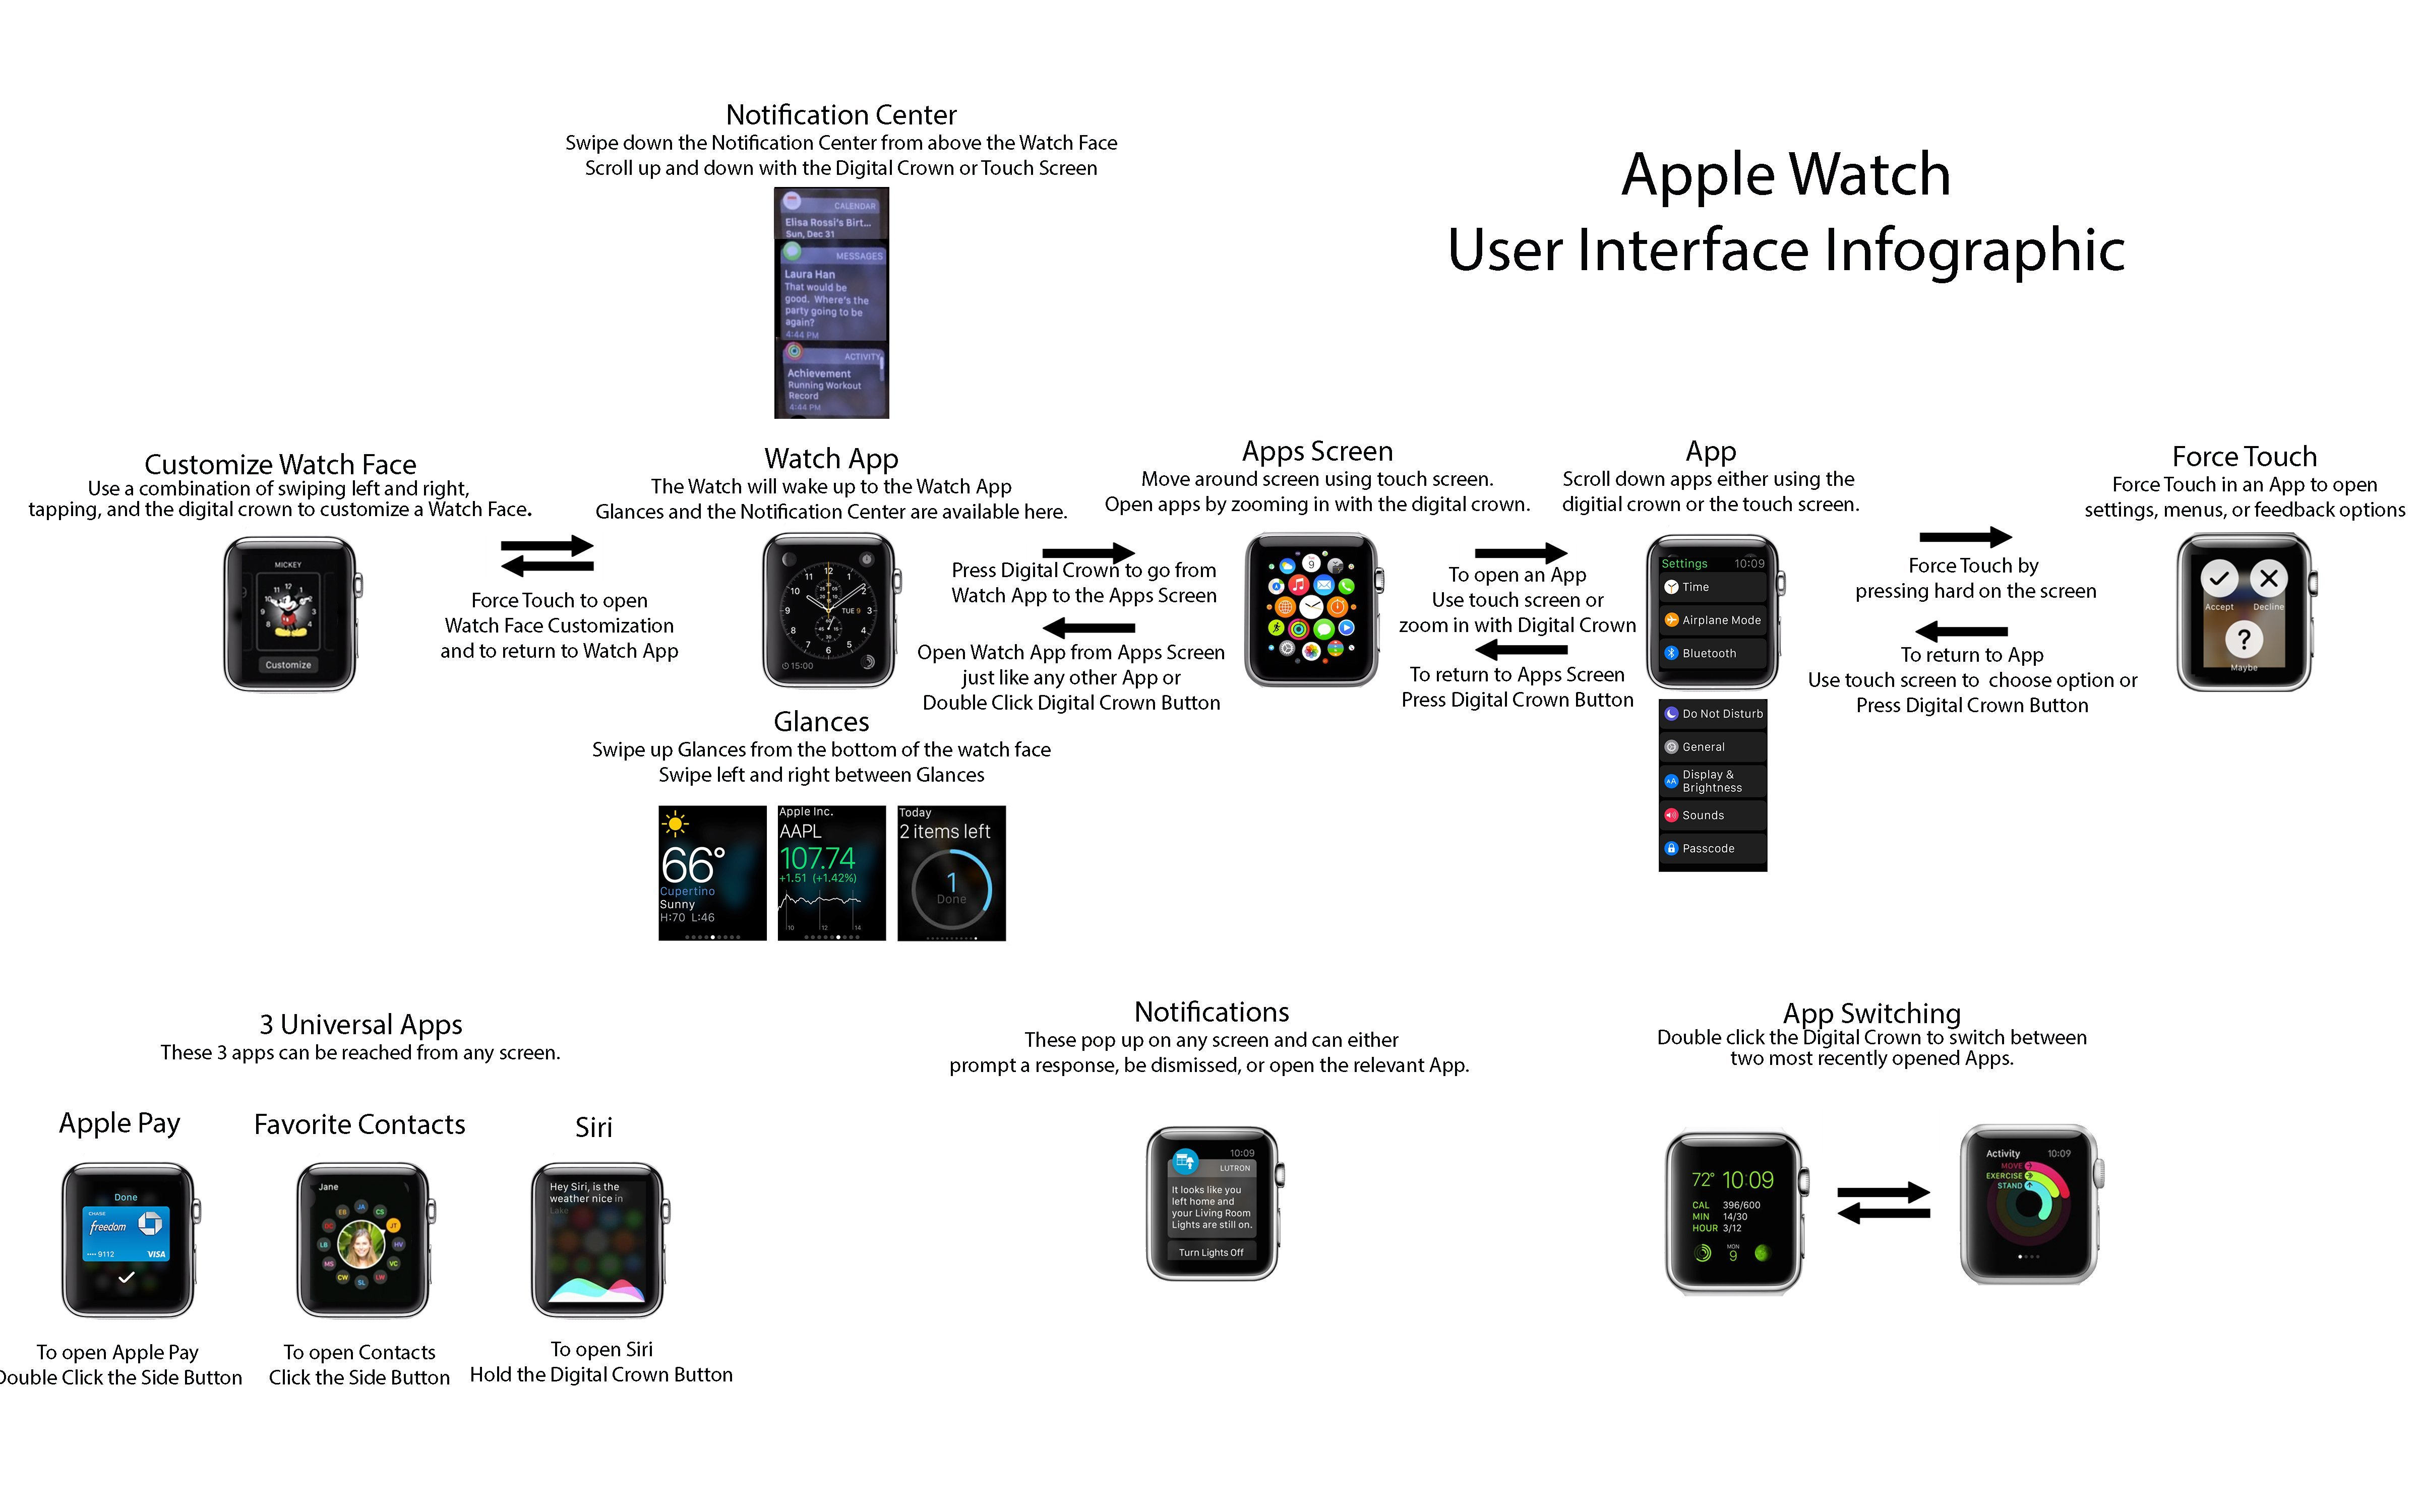 a-picture-shows-how-to-control-apple-watch_00